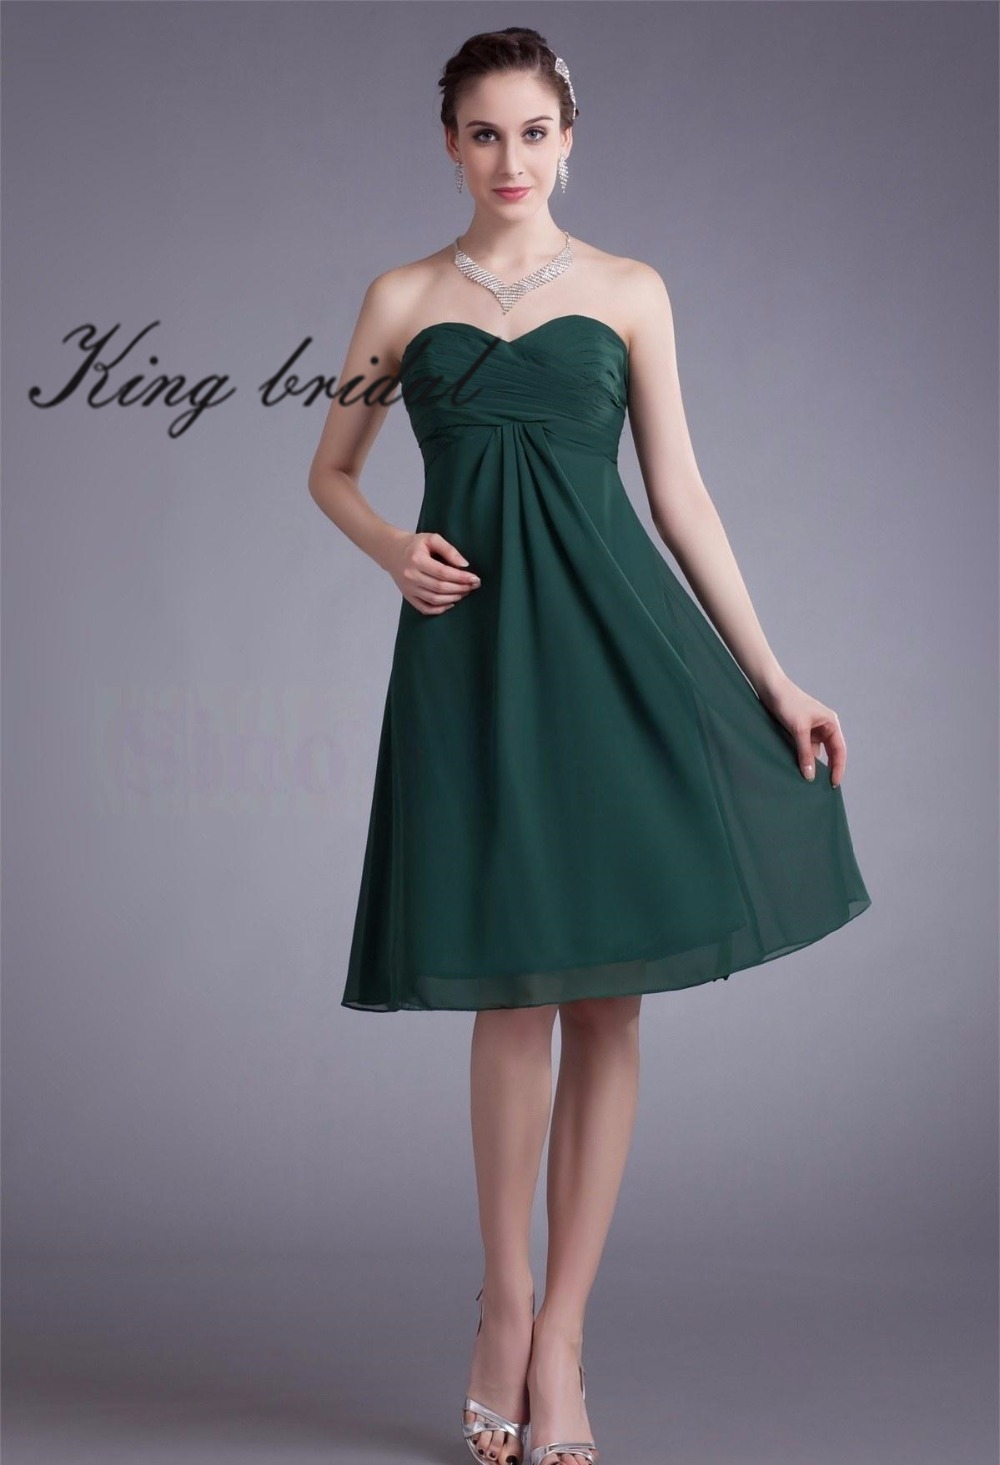 hunter green dresses - photo #23